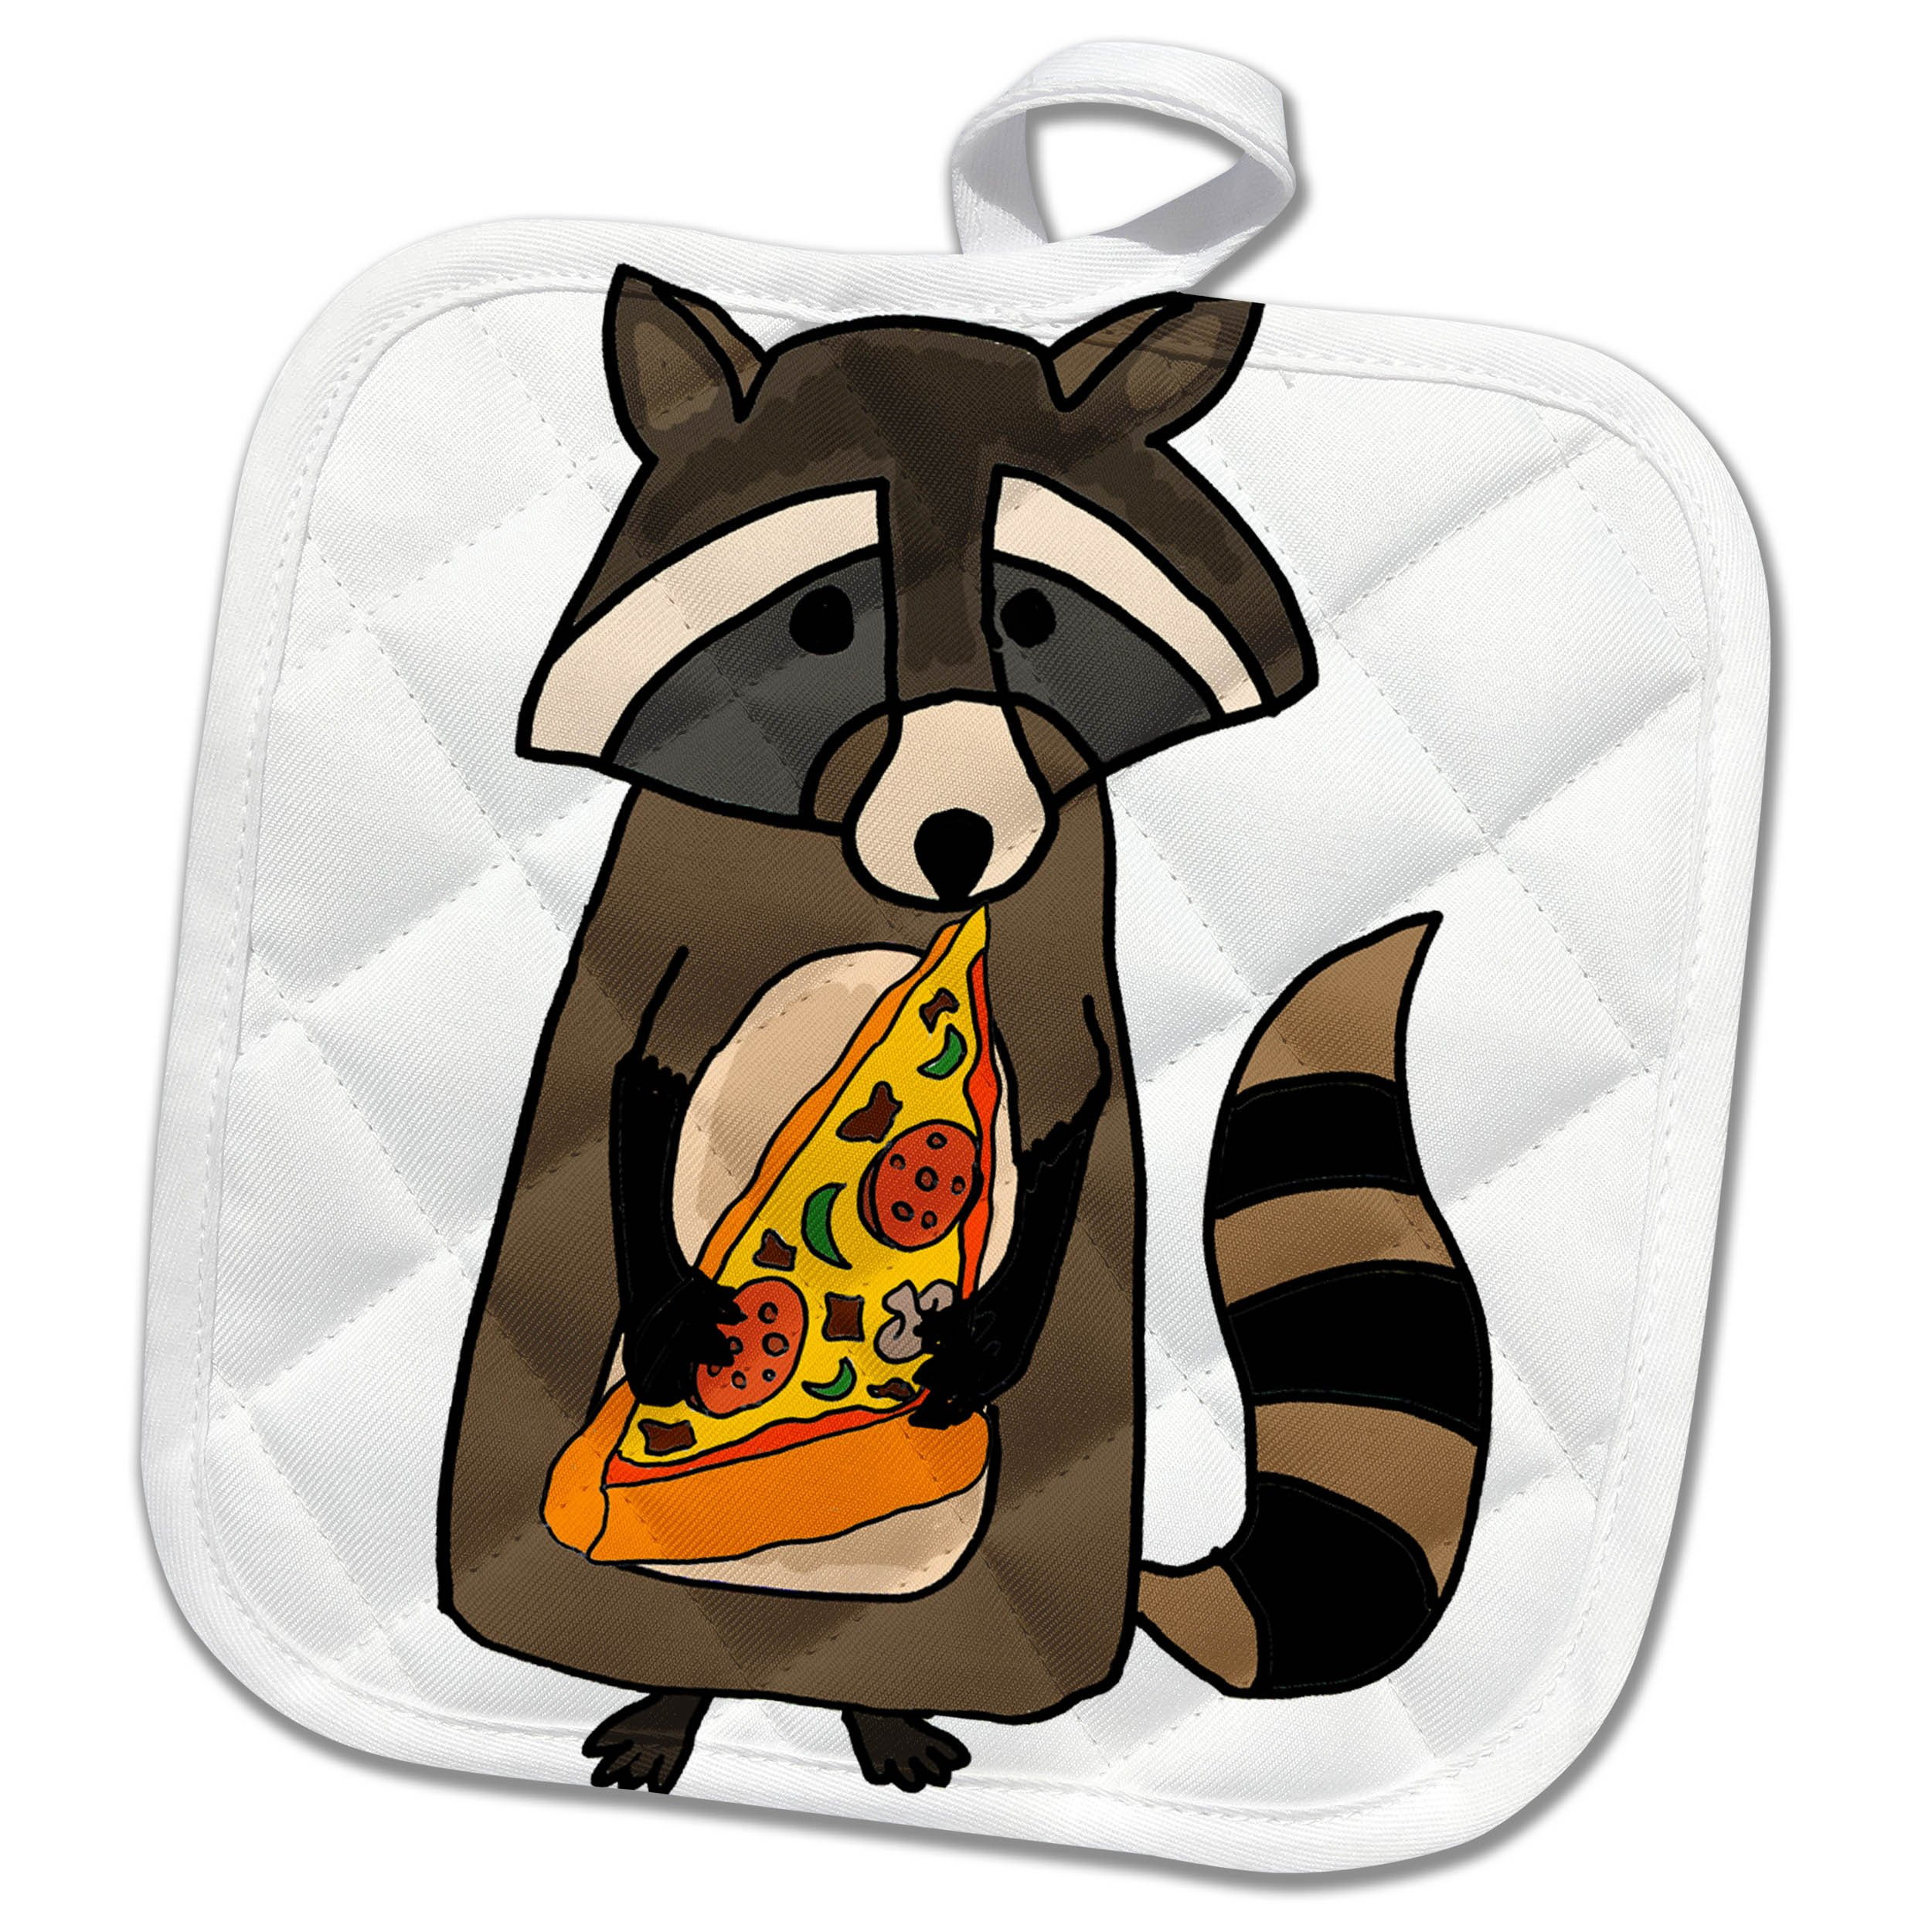 3dRose All Smiles Art Animals - Funny Cute Raccoon Eating Pizza Slice - 8x8 Potholder (phl_255704_1)